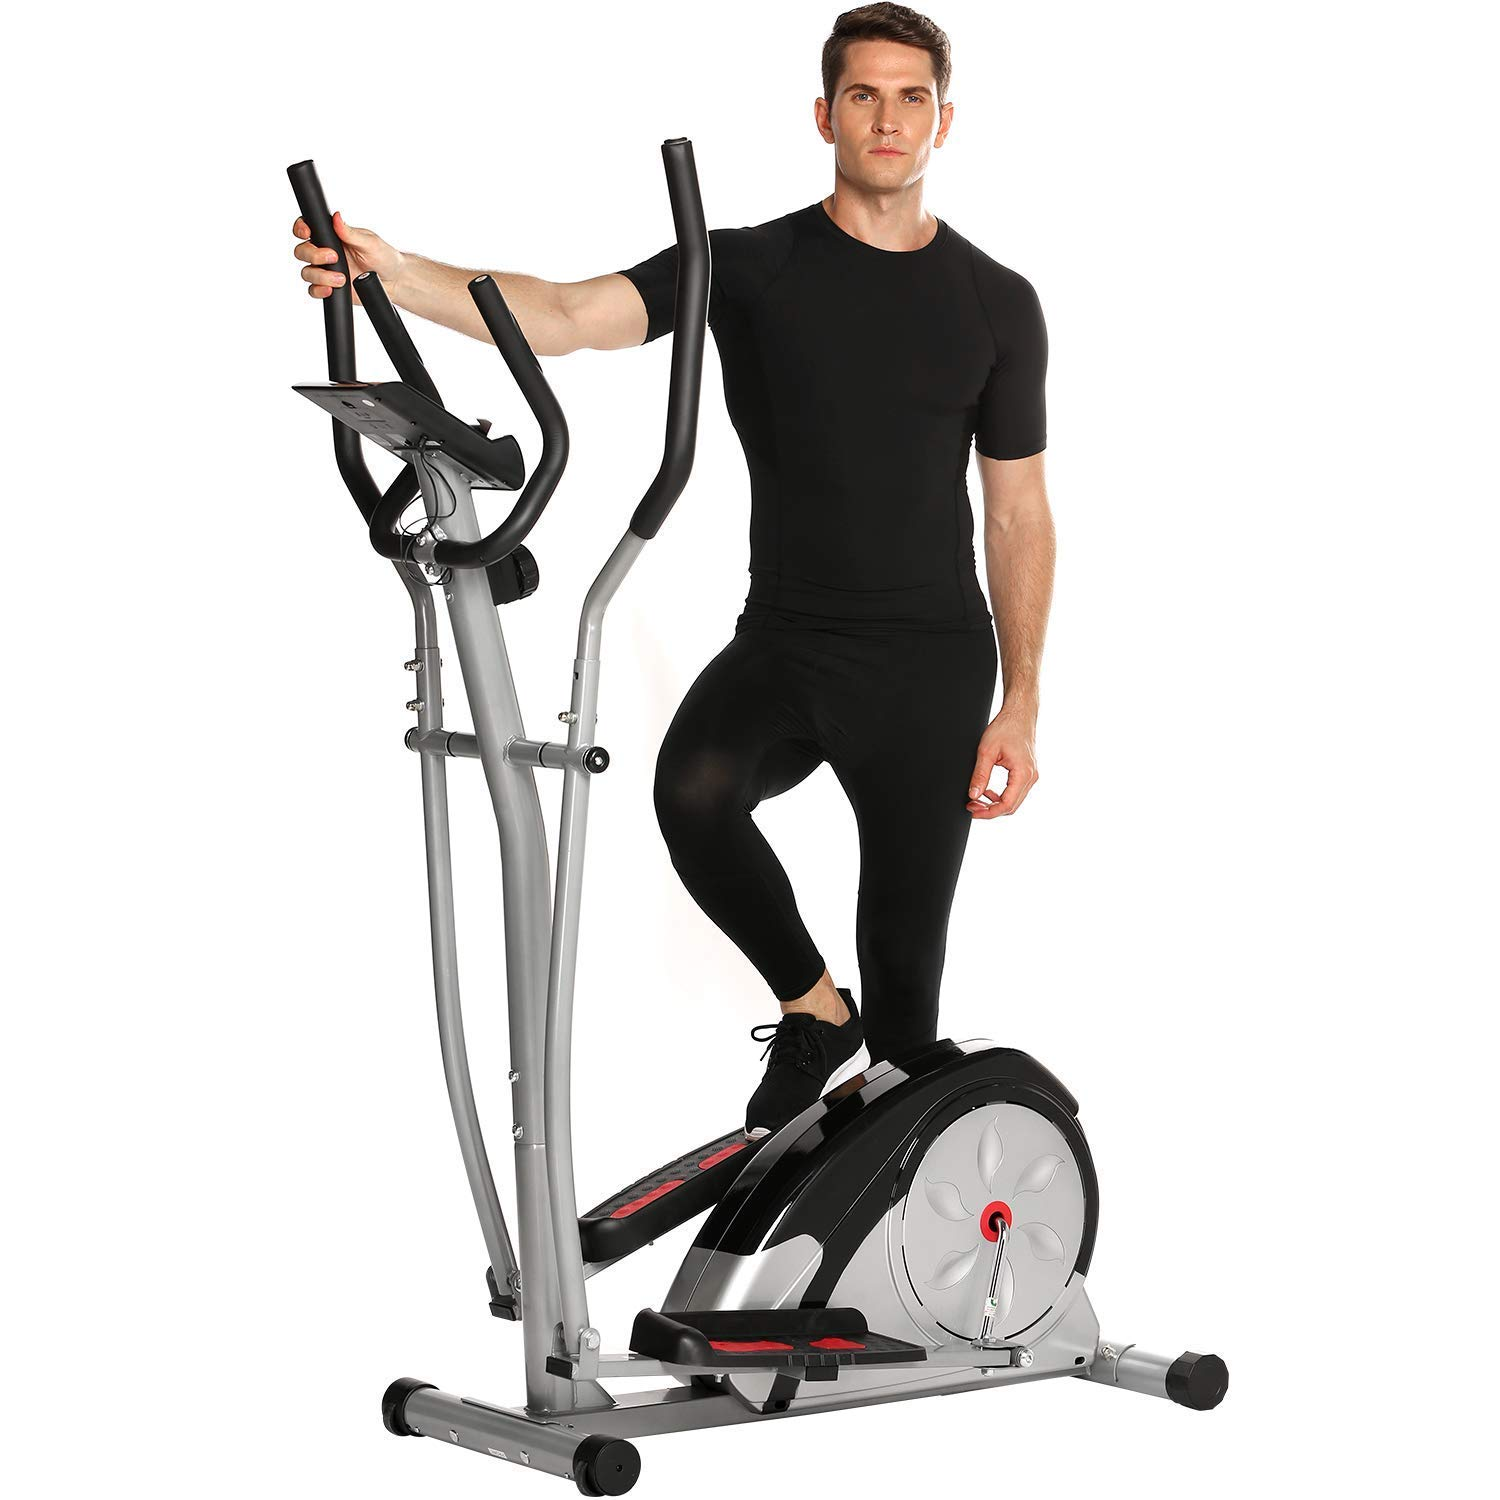 shaofu Magnetic Control Mute Elliptical Trainer with LCD Monitor & Pulse Rate Grips | Home Office Fitness Workout Machine (Silver)